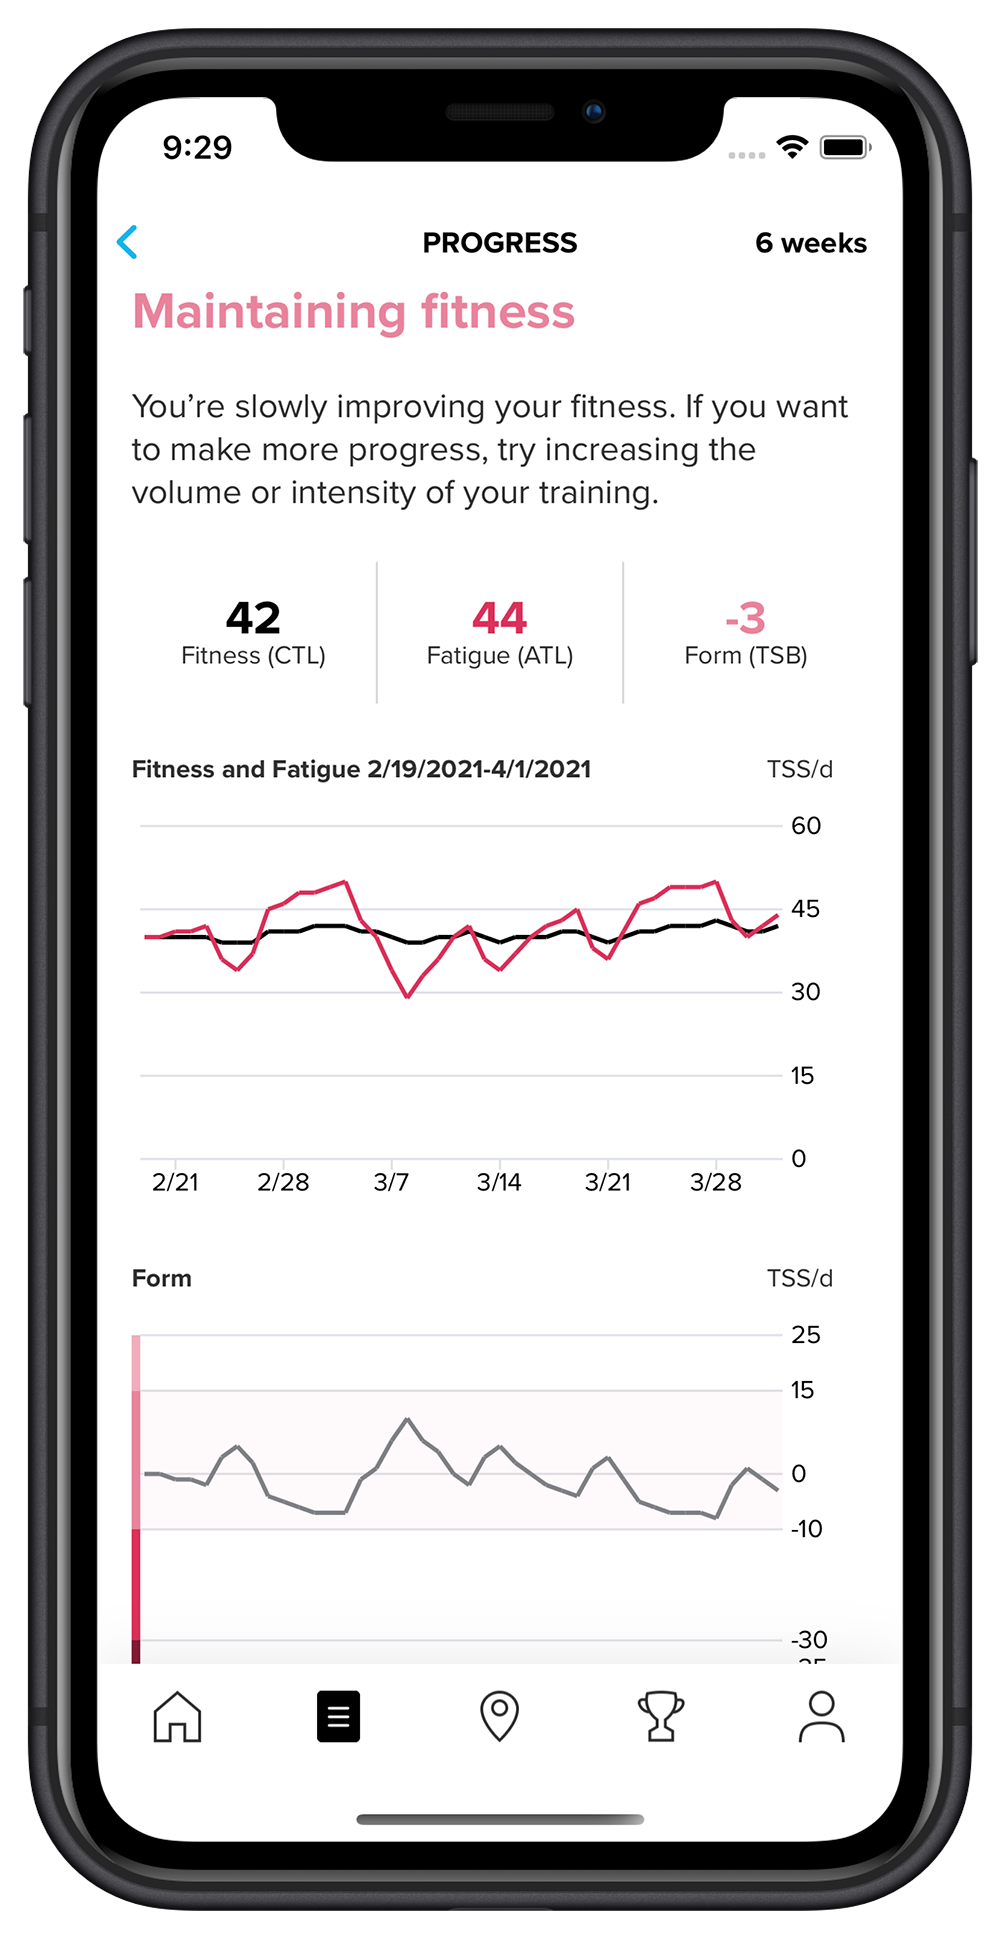 An example of typical training load graph for an active person in Suunto app